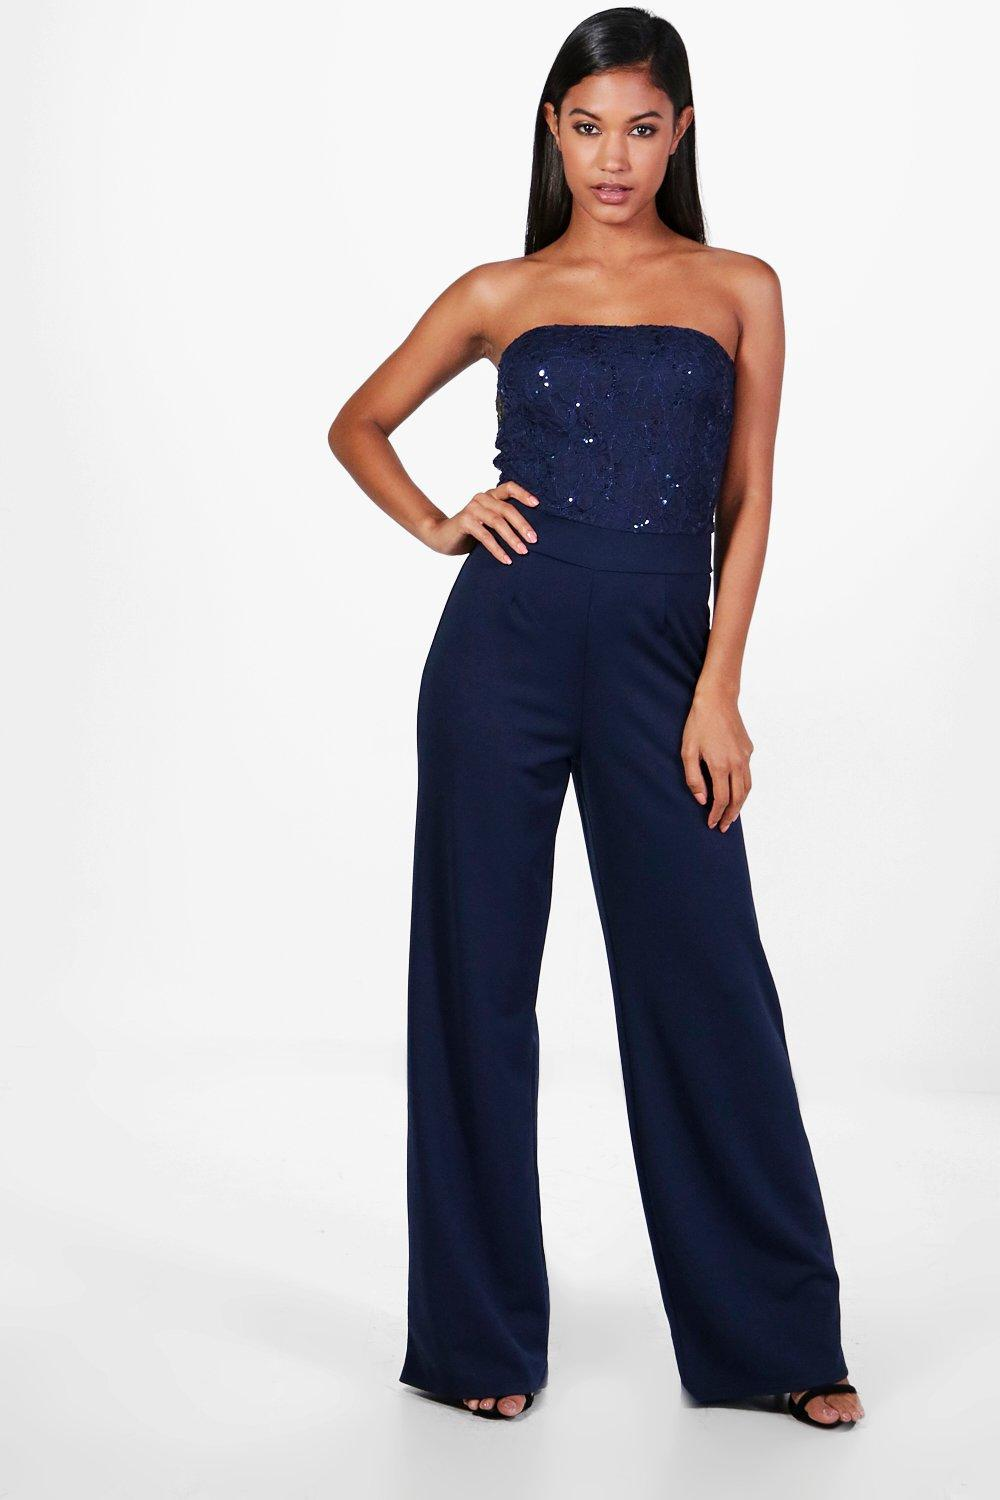 boohoo damen gemma eleganter jumpsuit mit weitem bein und pailletten ebay. Black Bedroom Furniture Sets. Home Design Ideas